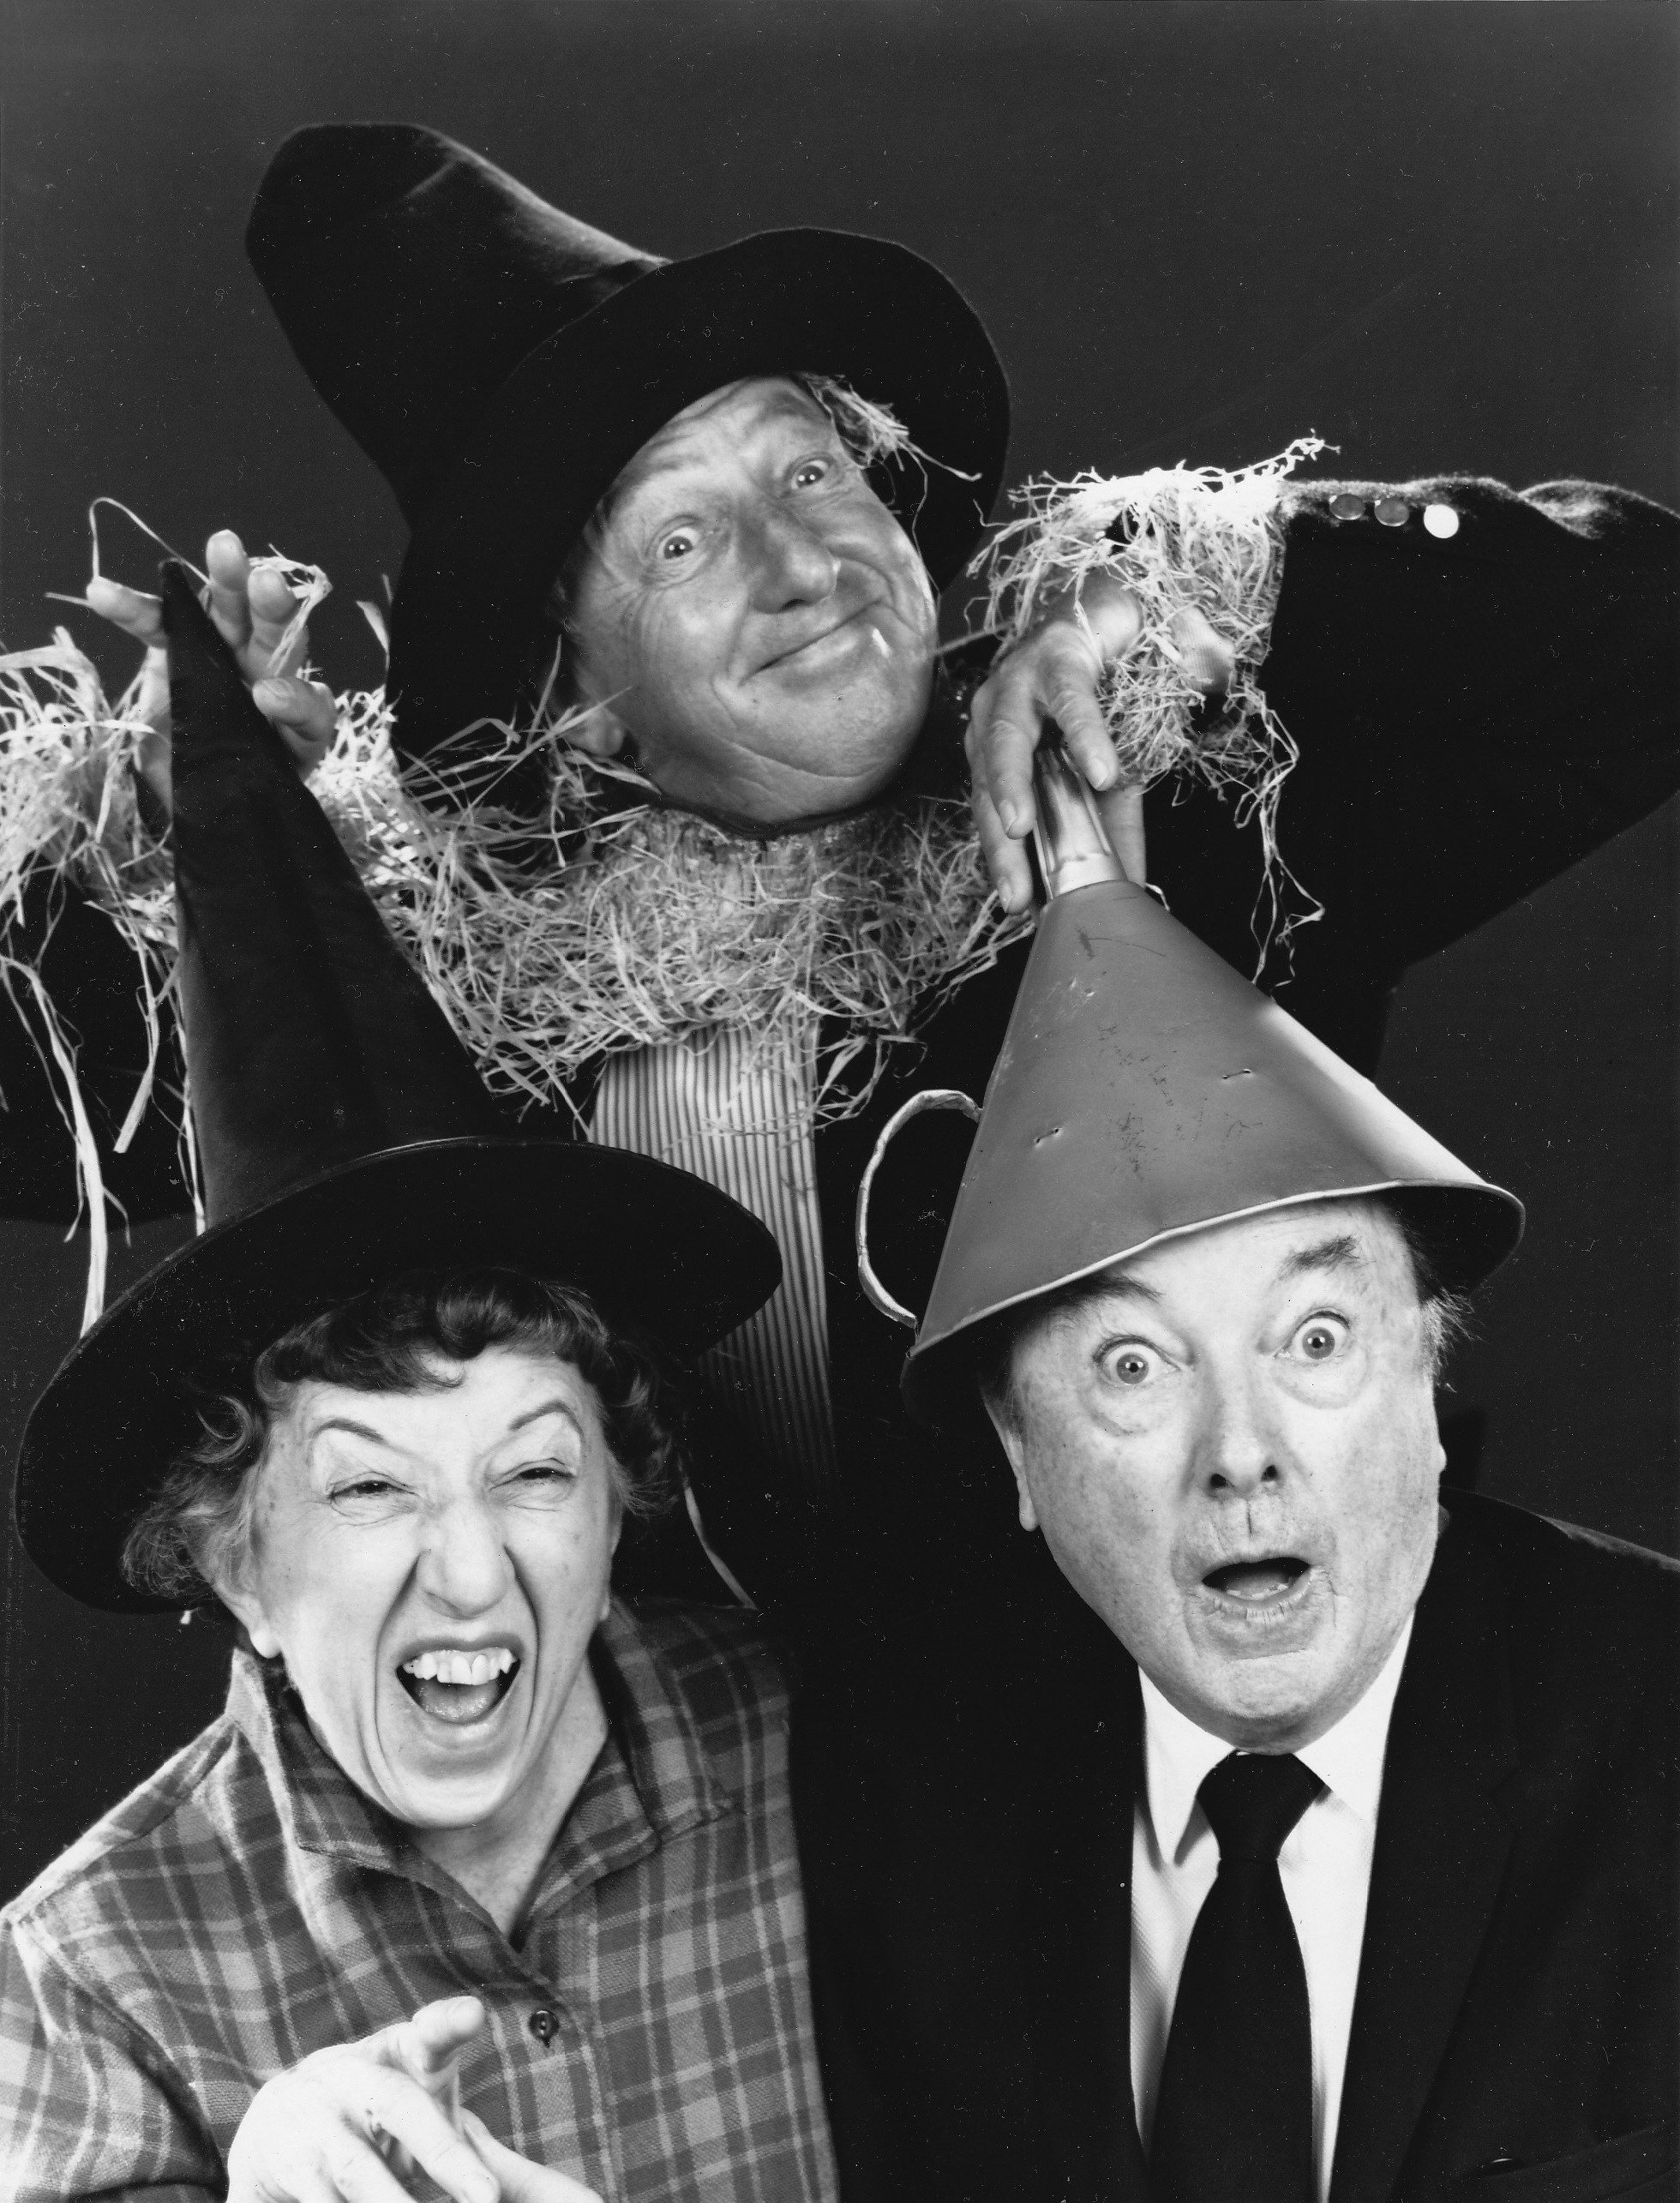 File:The Wizard of Oz Ray Bolger Jack Haley Margaret Hamilton Reunited